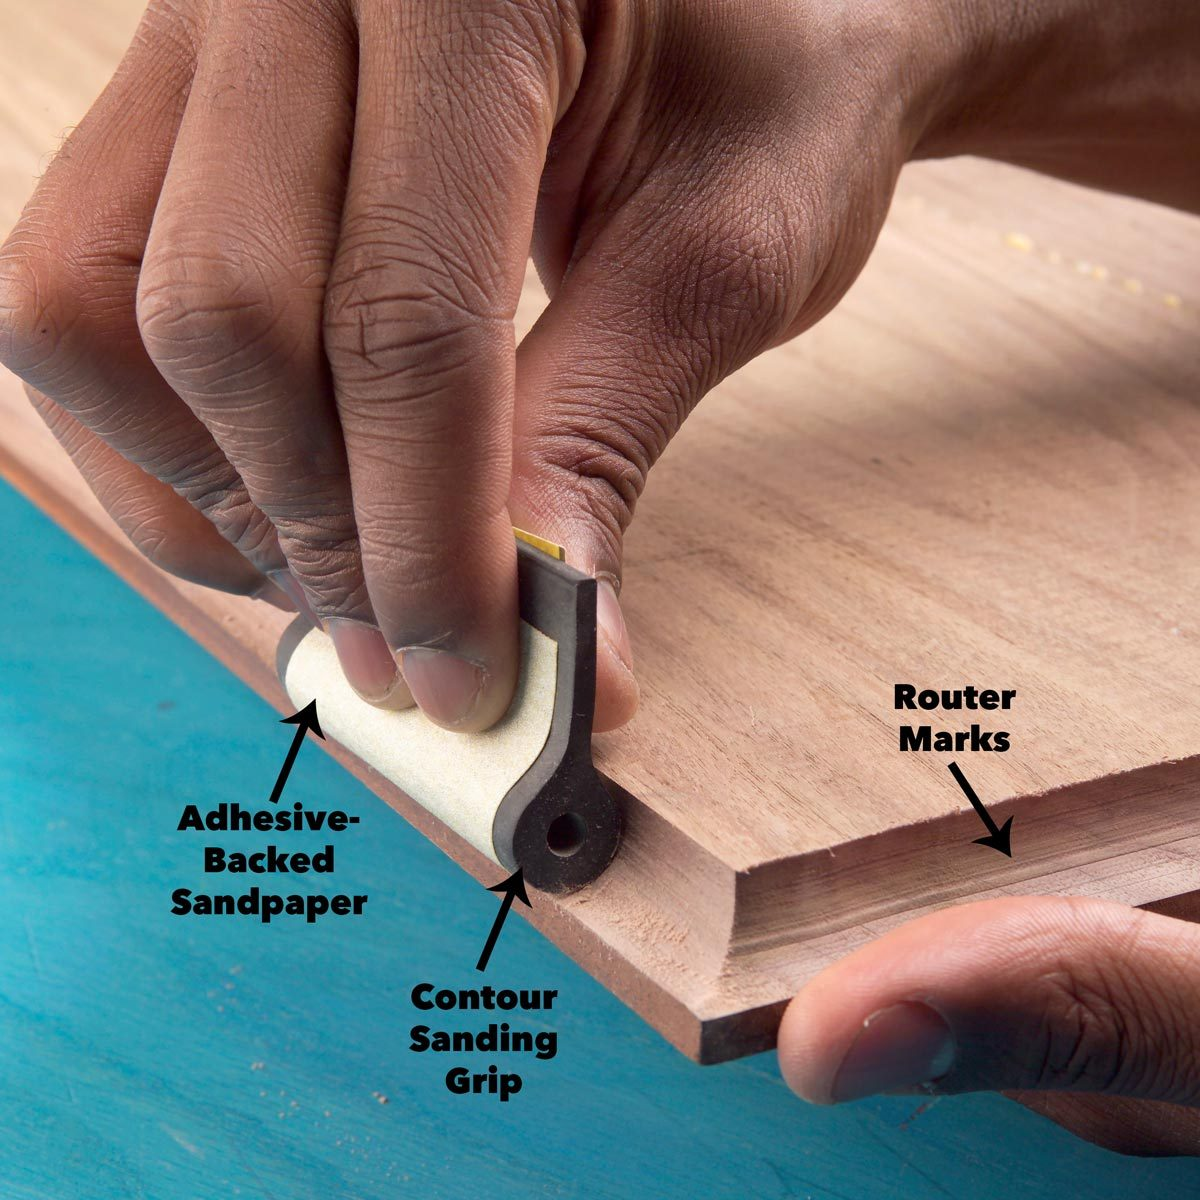 sanding tips save finger tips